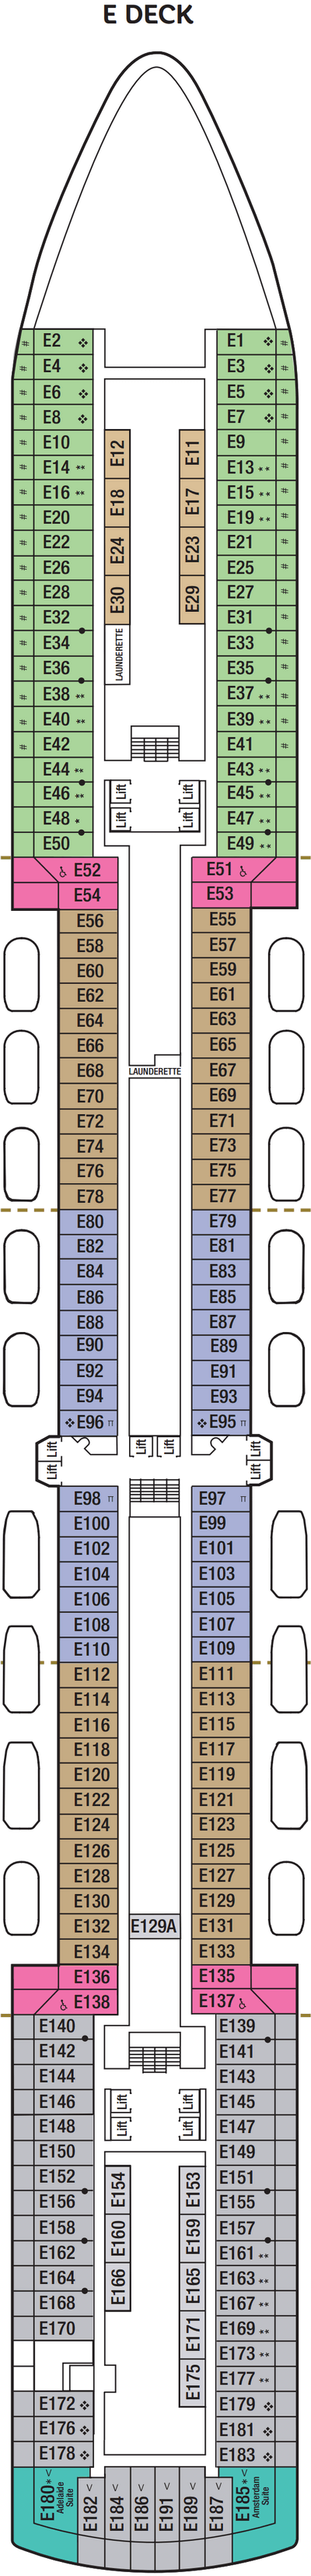 Arcadia E Deck layout